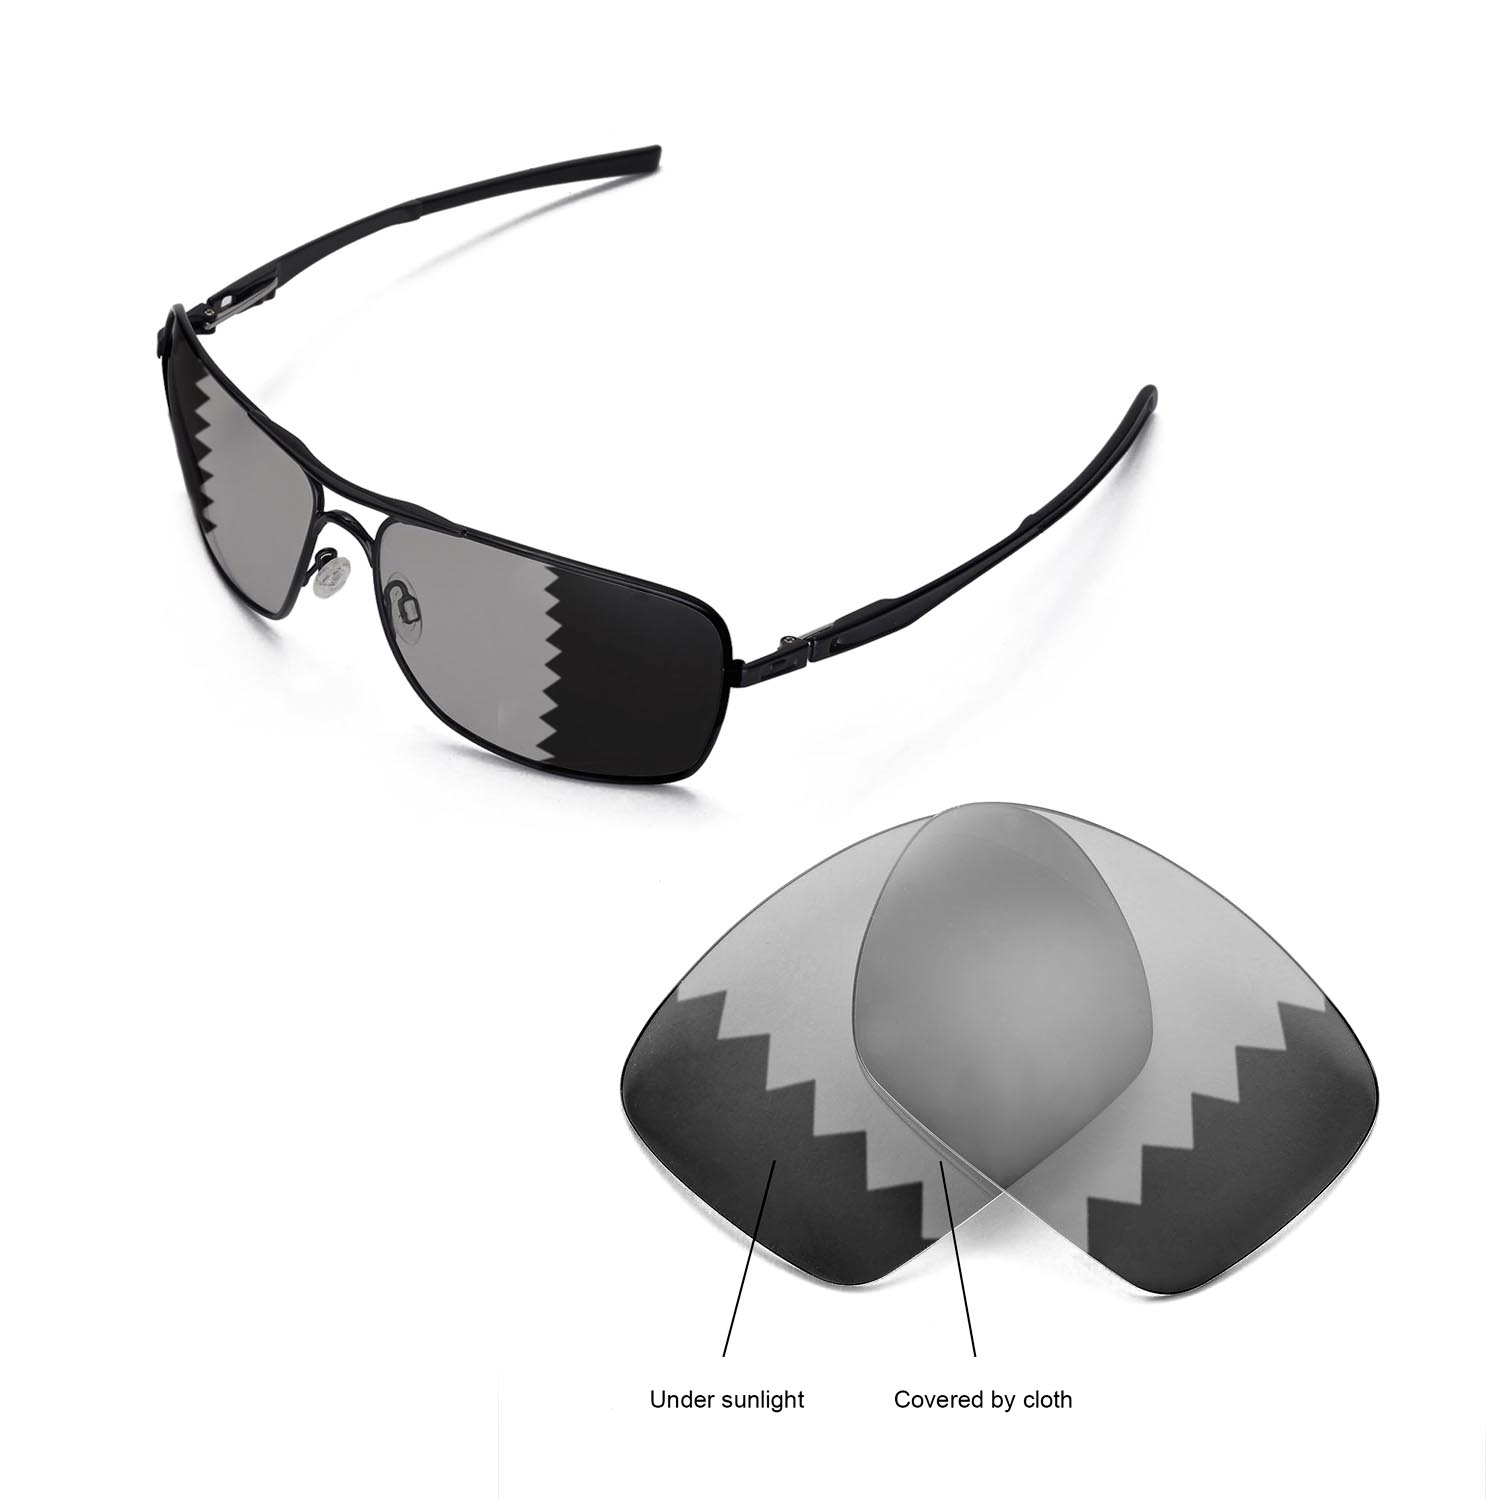 a11c3a07a7 Details about New WL Polarized Transition Replacement Lenses For Oakley  Plaintiff Squared